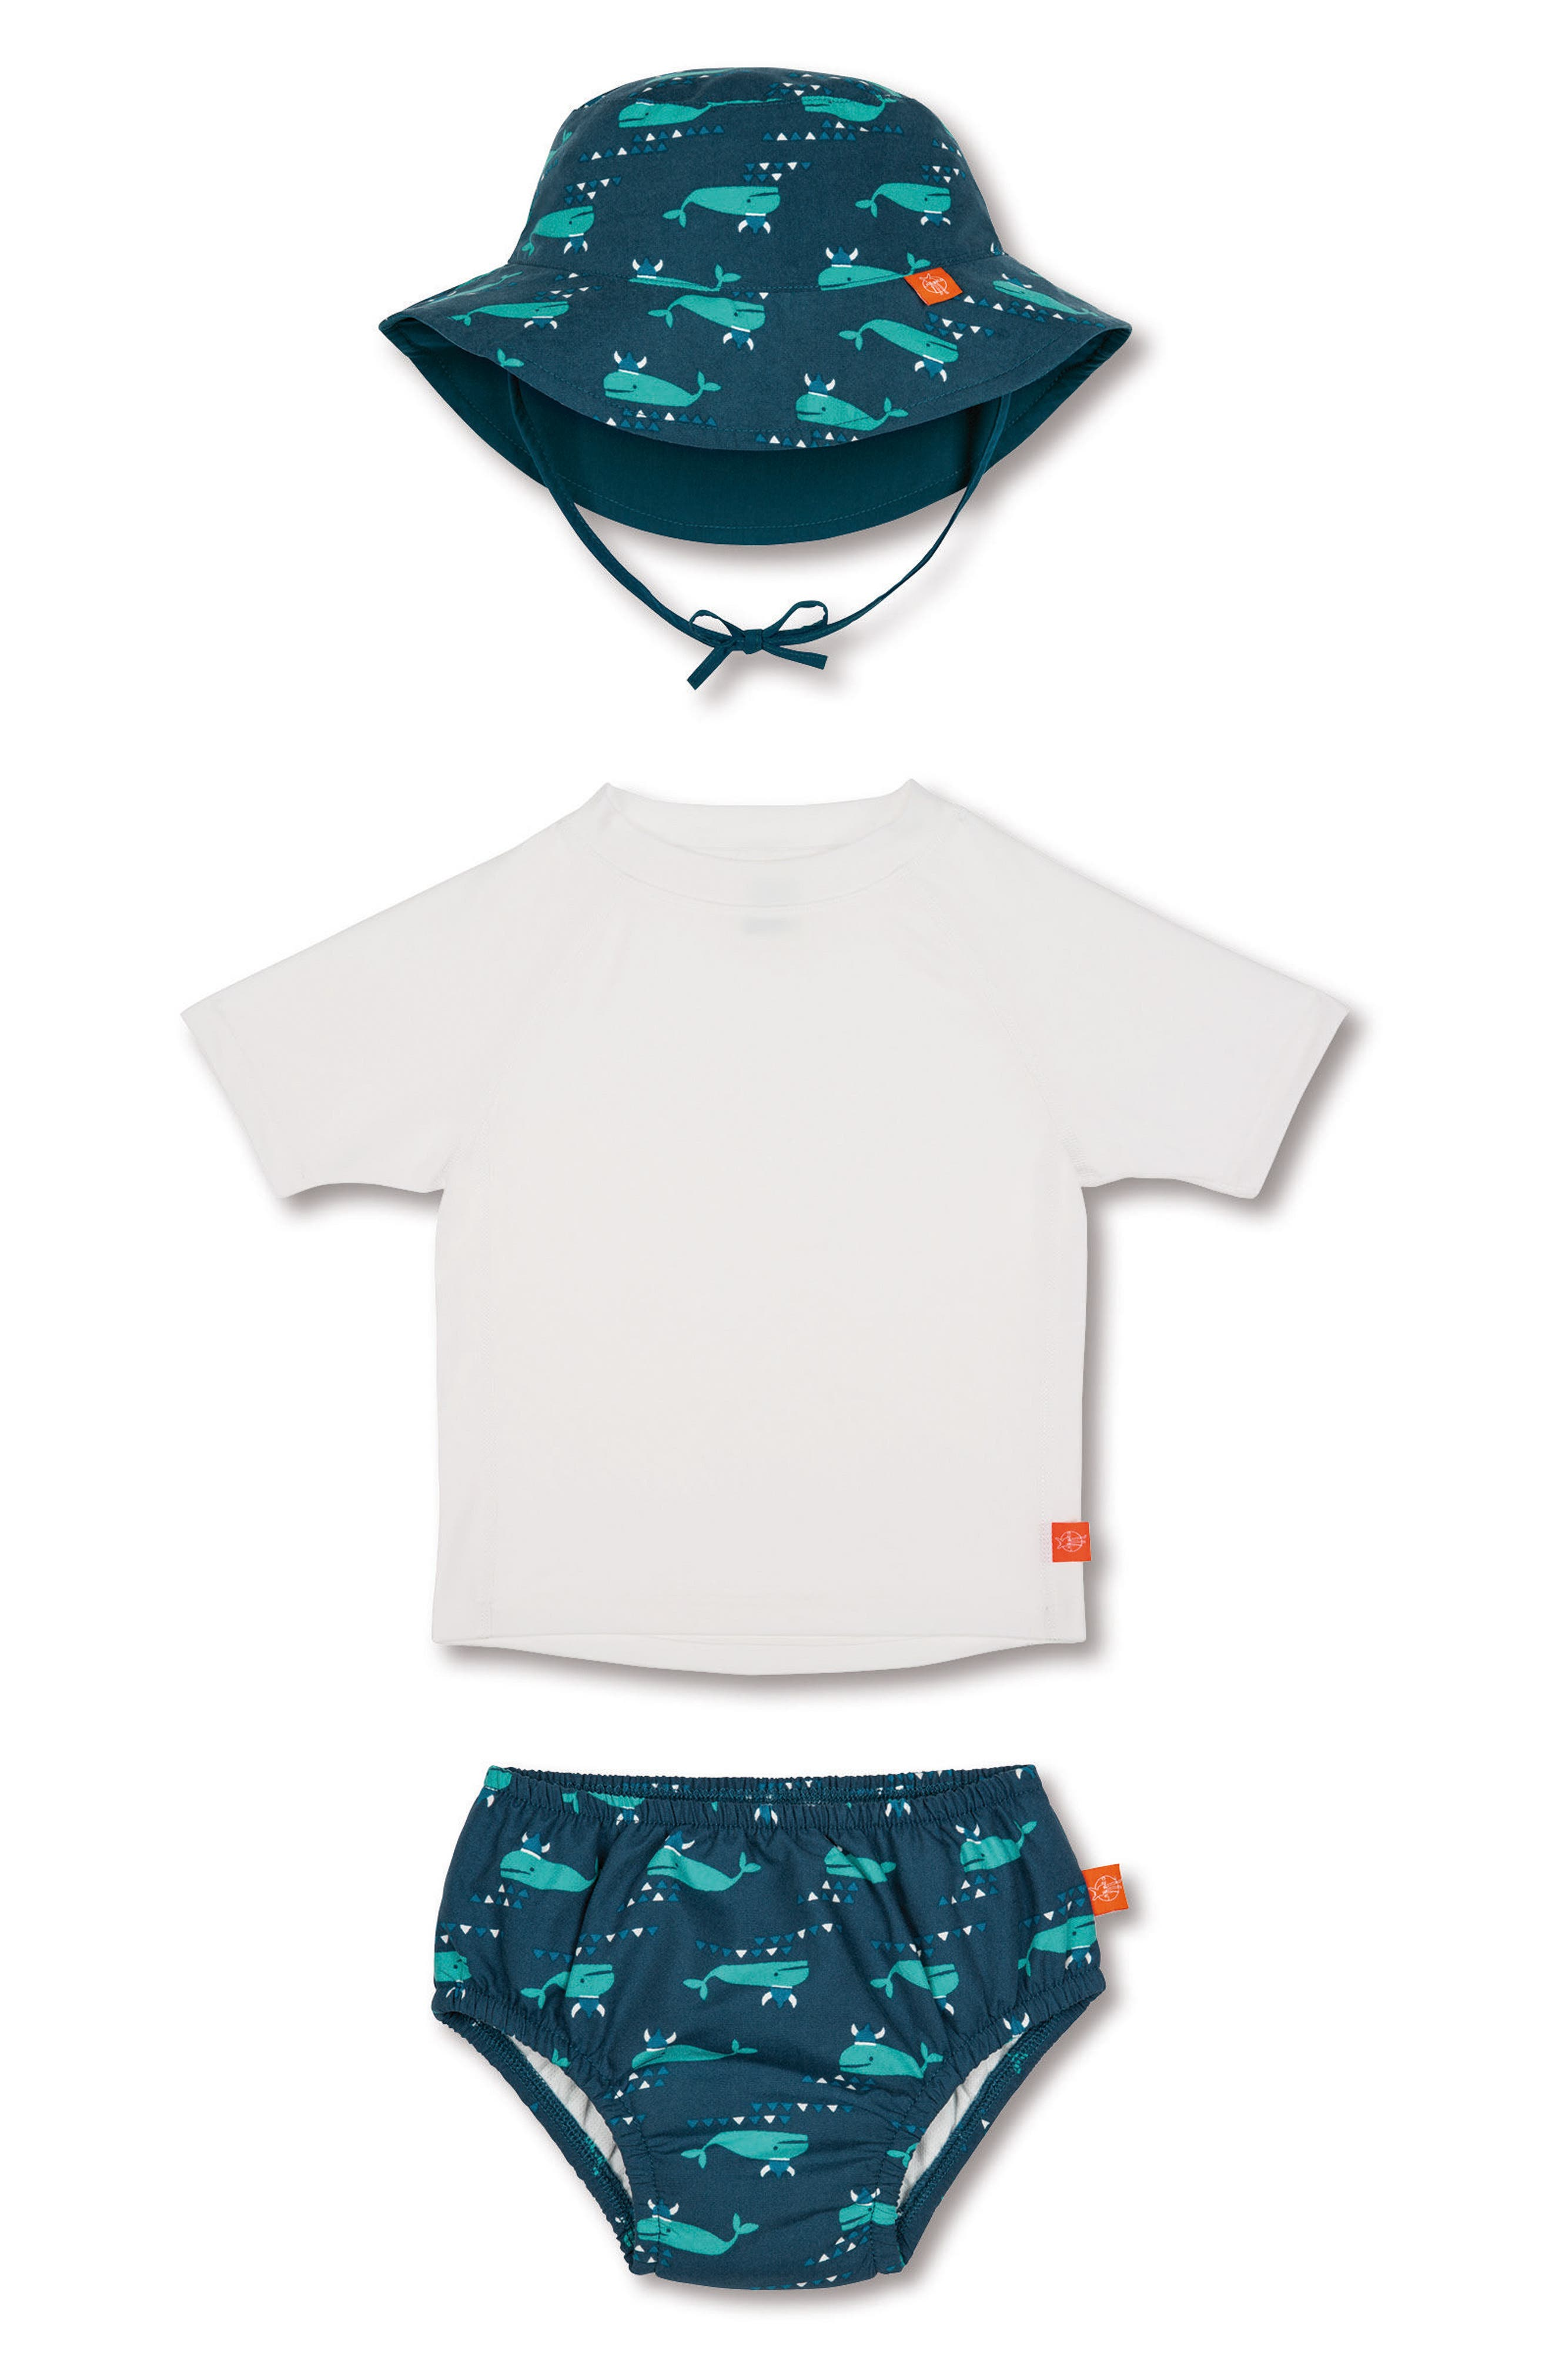 Main Image - Lassig Two-Piece Rashguard Swimsuit & Hat Set (Baby & Toddler)